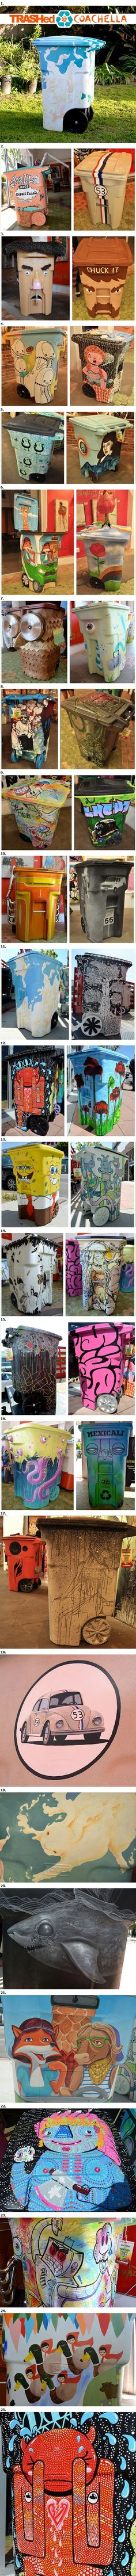 trash cans - street art Club D'art, Art Club, Graffiti, Street Art, Creation Art, High School Art, Inspiration Art, Recycled Art, Banksy